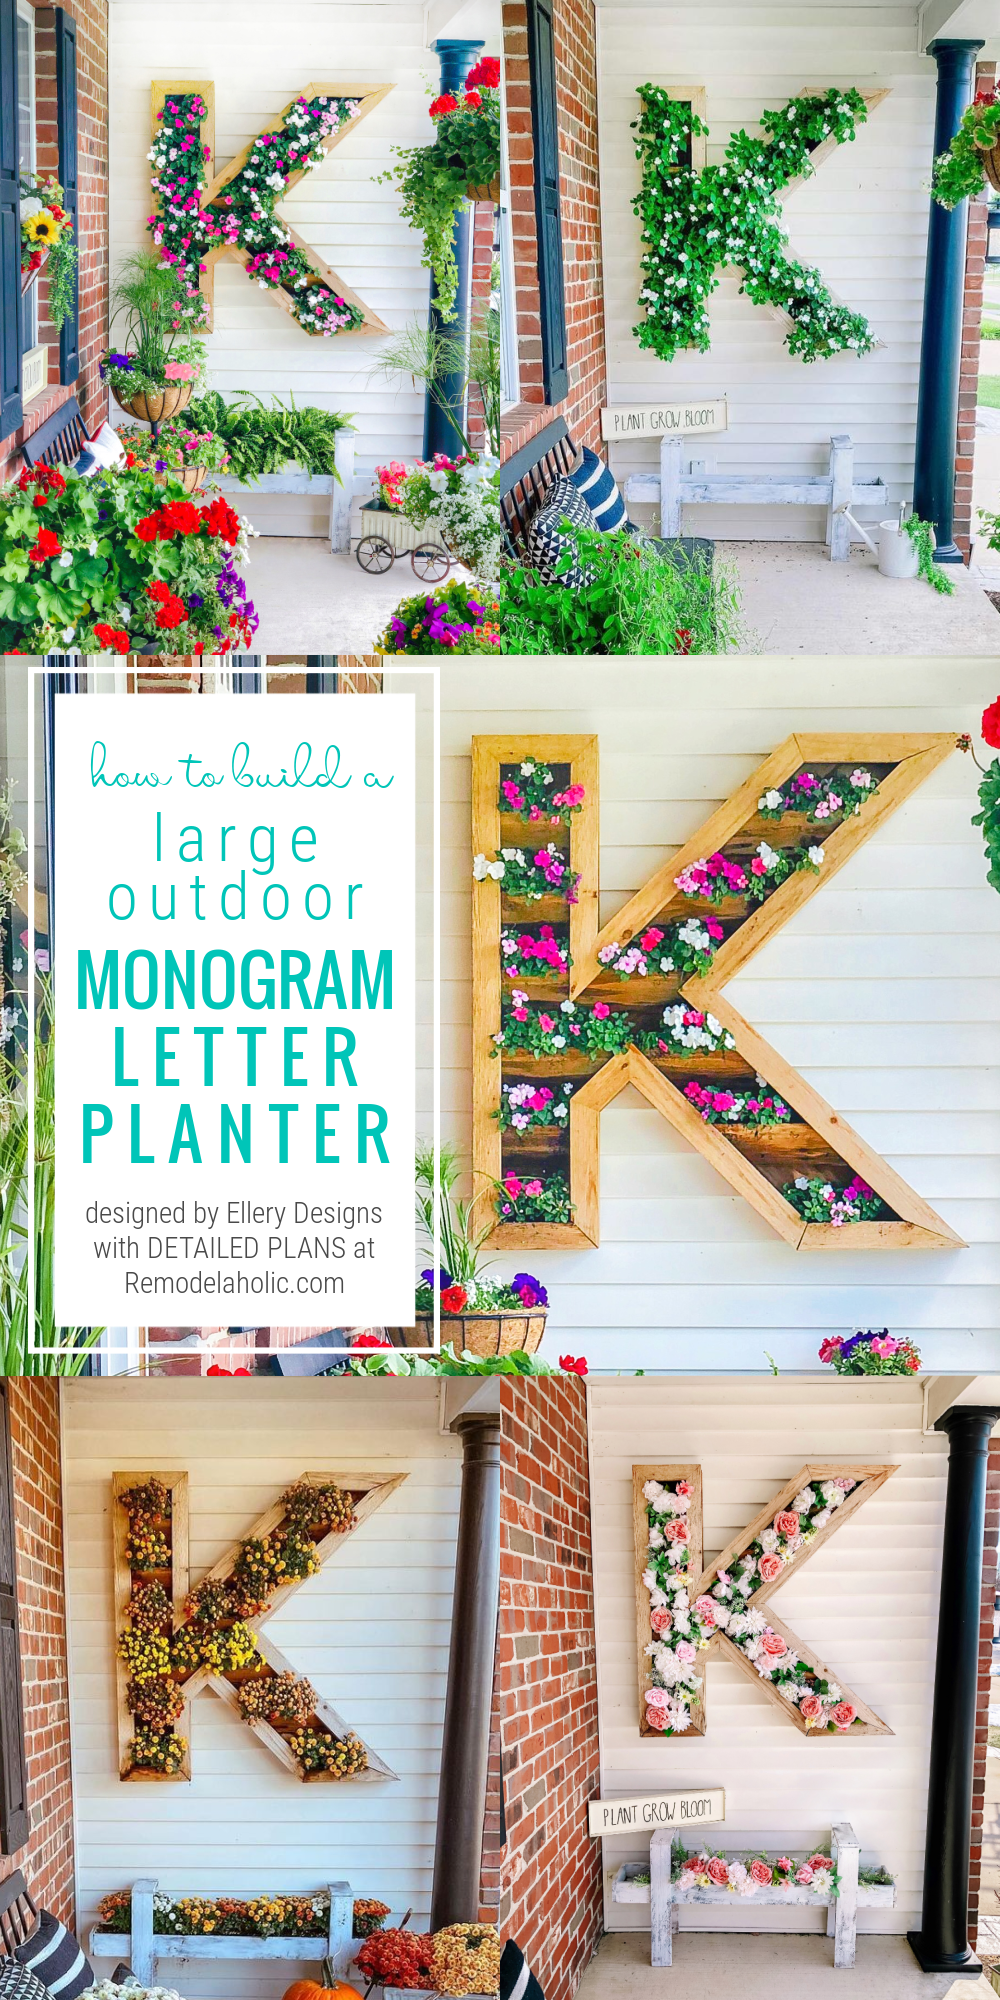 DIY Large Outdoor Wood Monogram Letter Planter, Ellery Designs And Remodelaholic